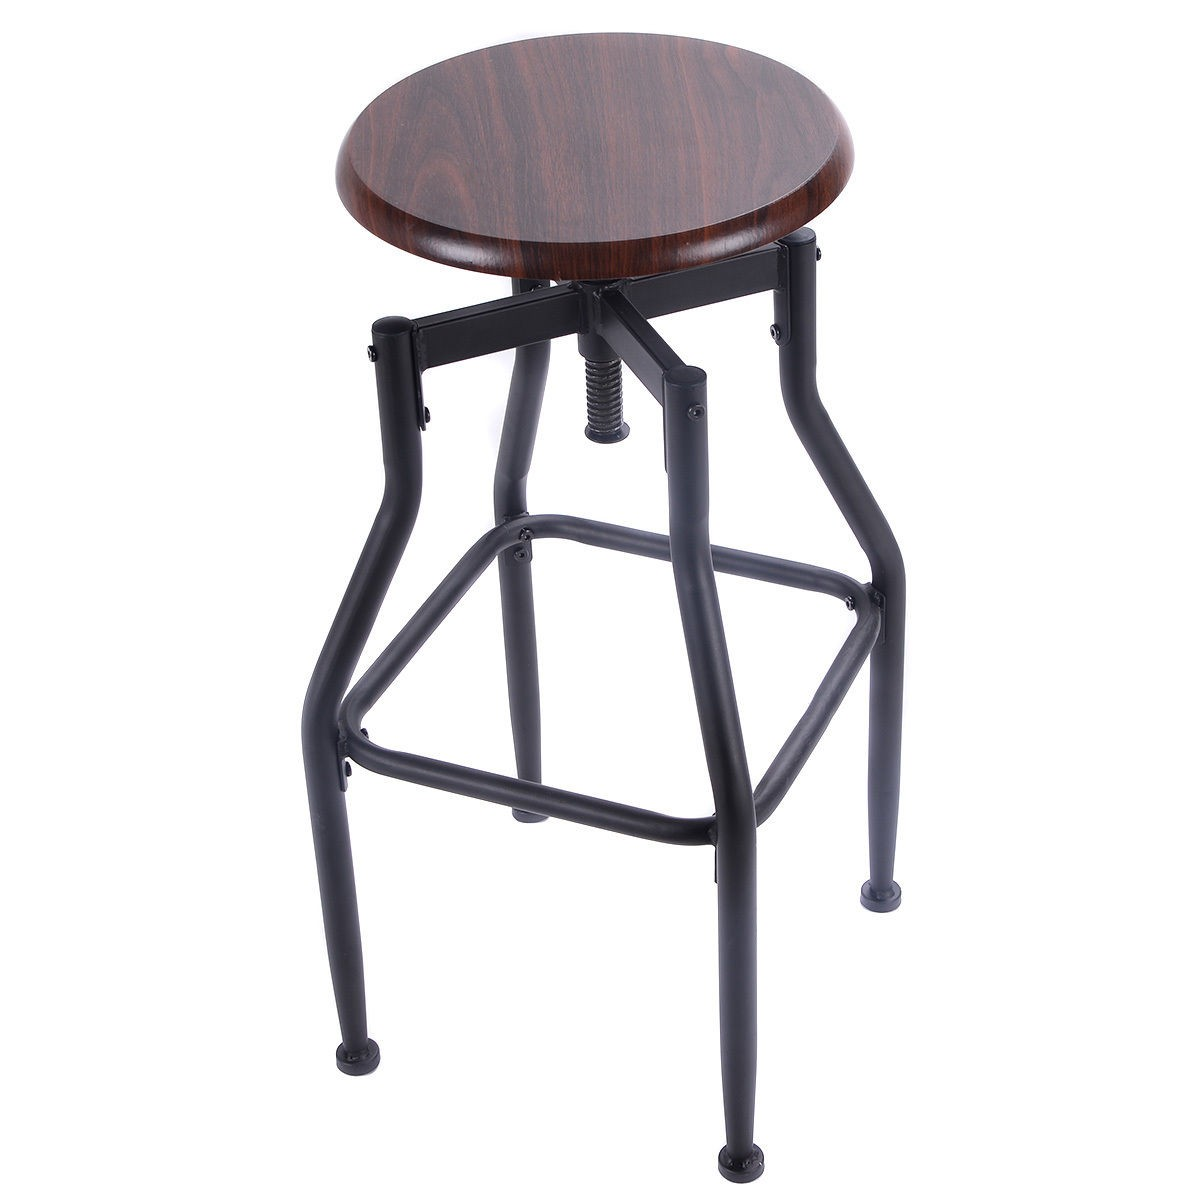 Vintage Bar Stool Wood Metal Design Top Height Adjustable  : HW52162 from www.ebay.com size 1200 x 1200 jpeg 92kB